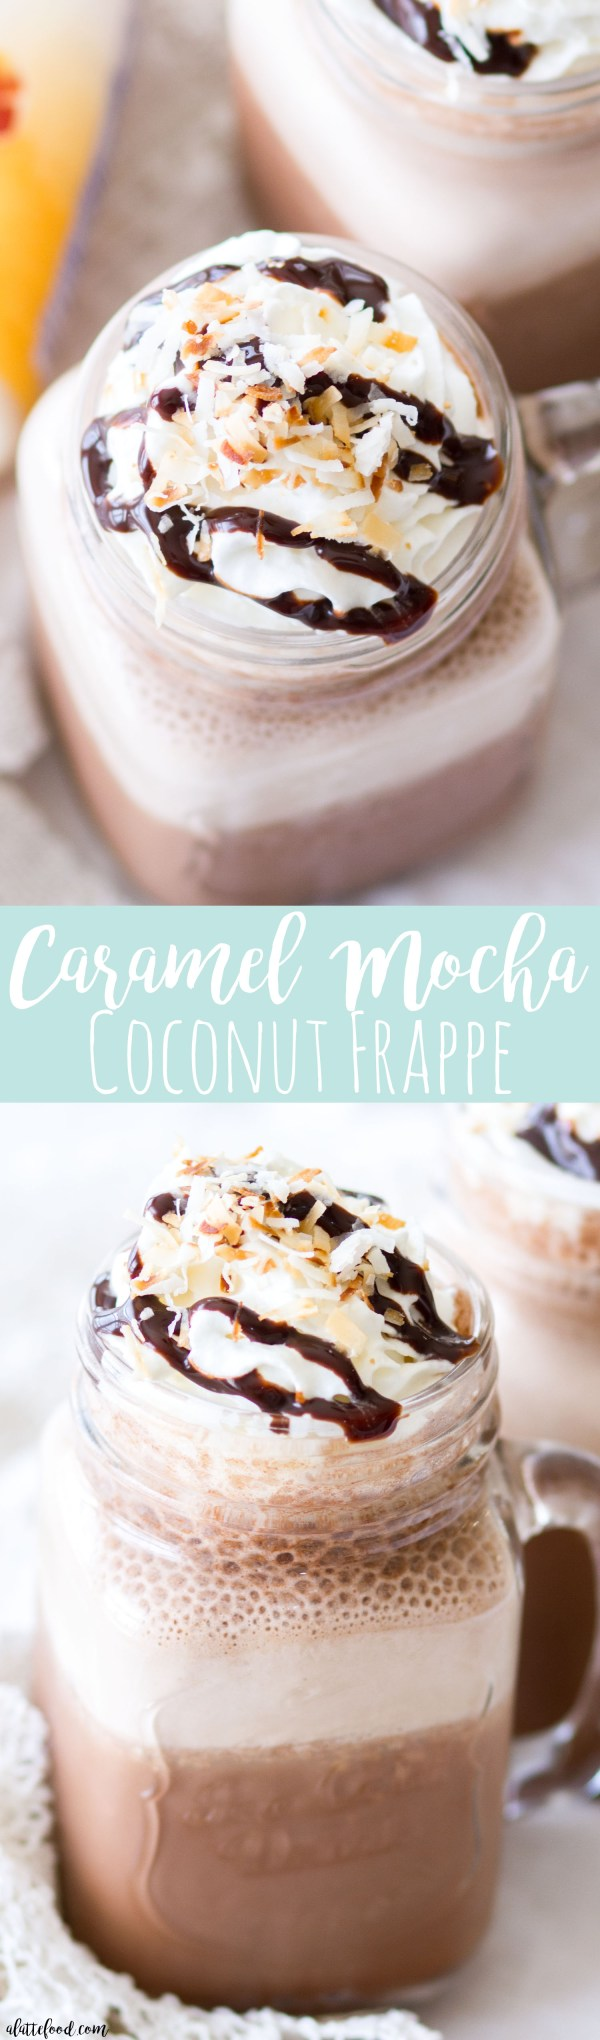 This homemade Caramel Mocha Coconut Frappe tastes like your favorite coffee drink, but is made right at home! Just a few ingredients stands between you and this refreshing Caramel Mocha Coconut Frappe!